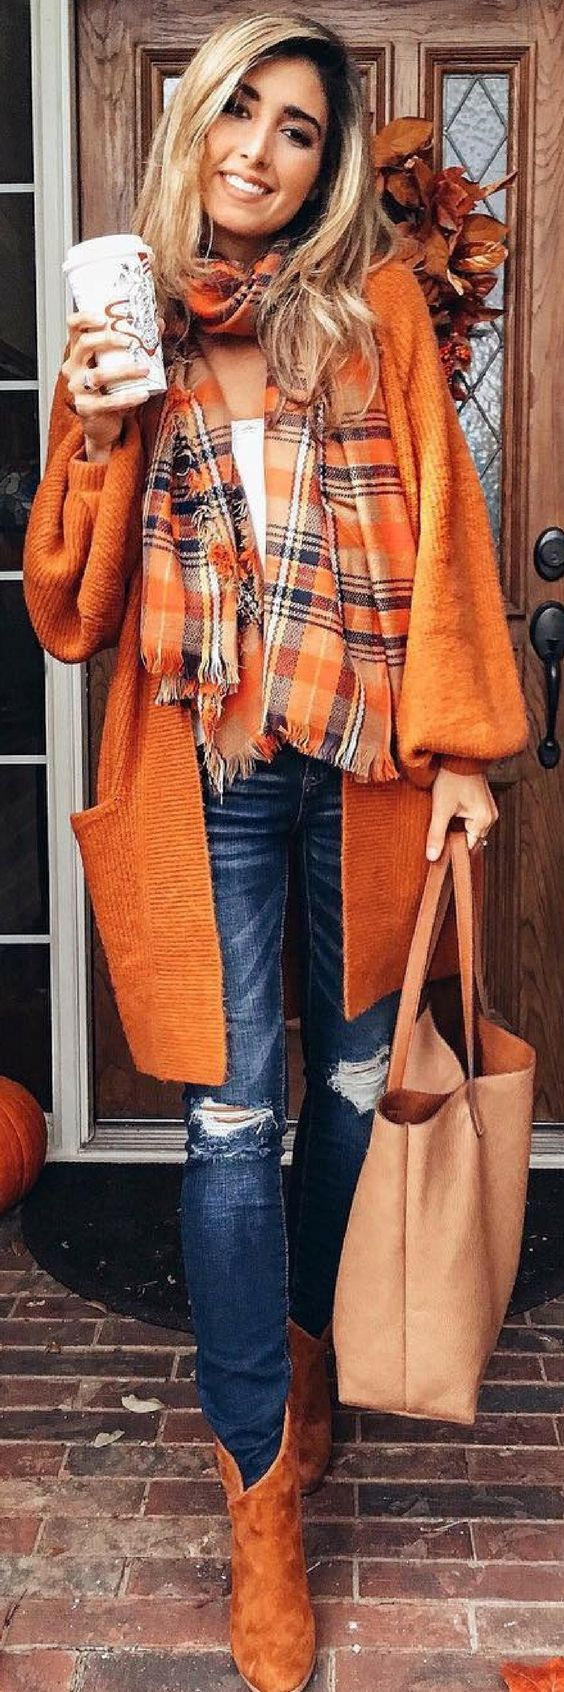 Top 5 Of The Most Sensational Holiday Outfit Ideas This Fall https://ecstasymodels.blog/2017/11/15/top-5-sensational-holiday-outfit-ideas-fall/